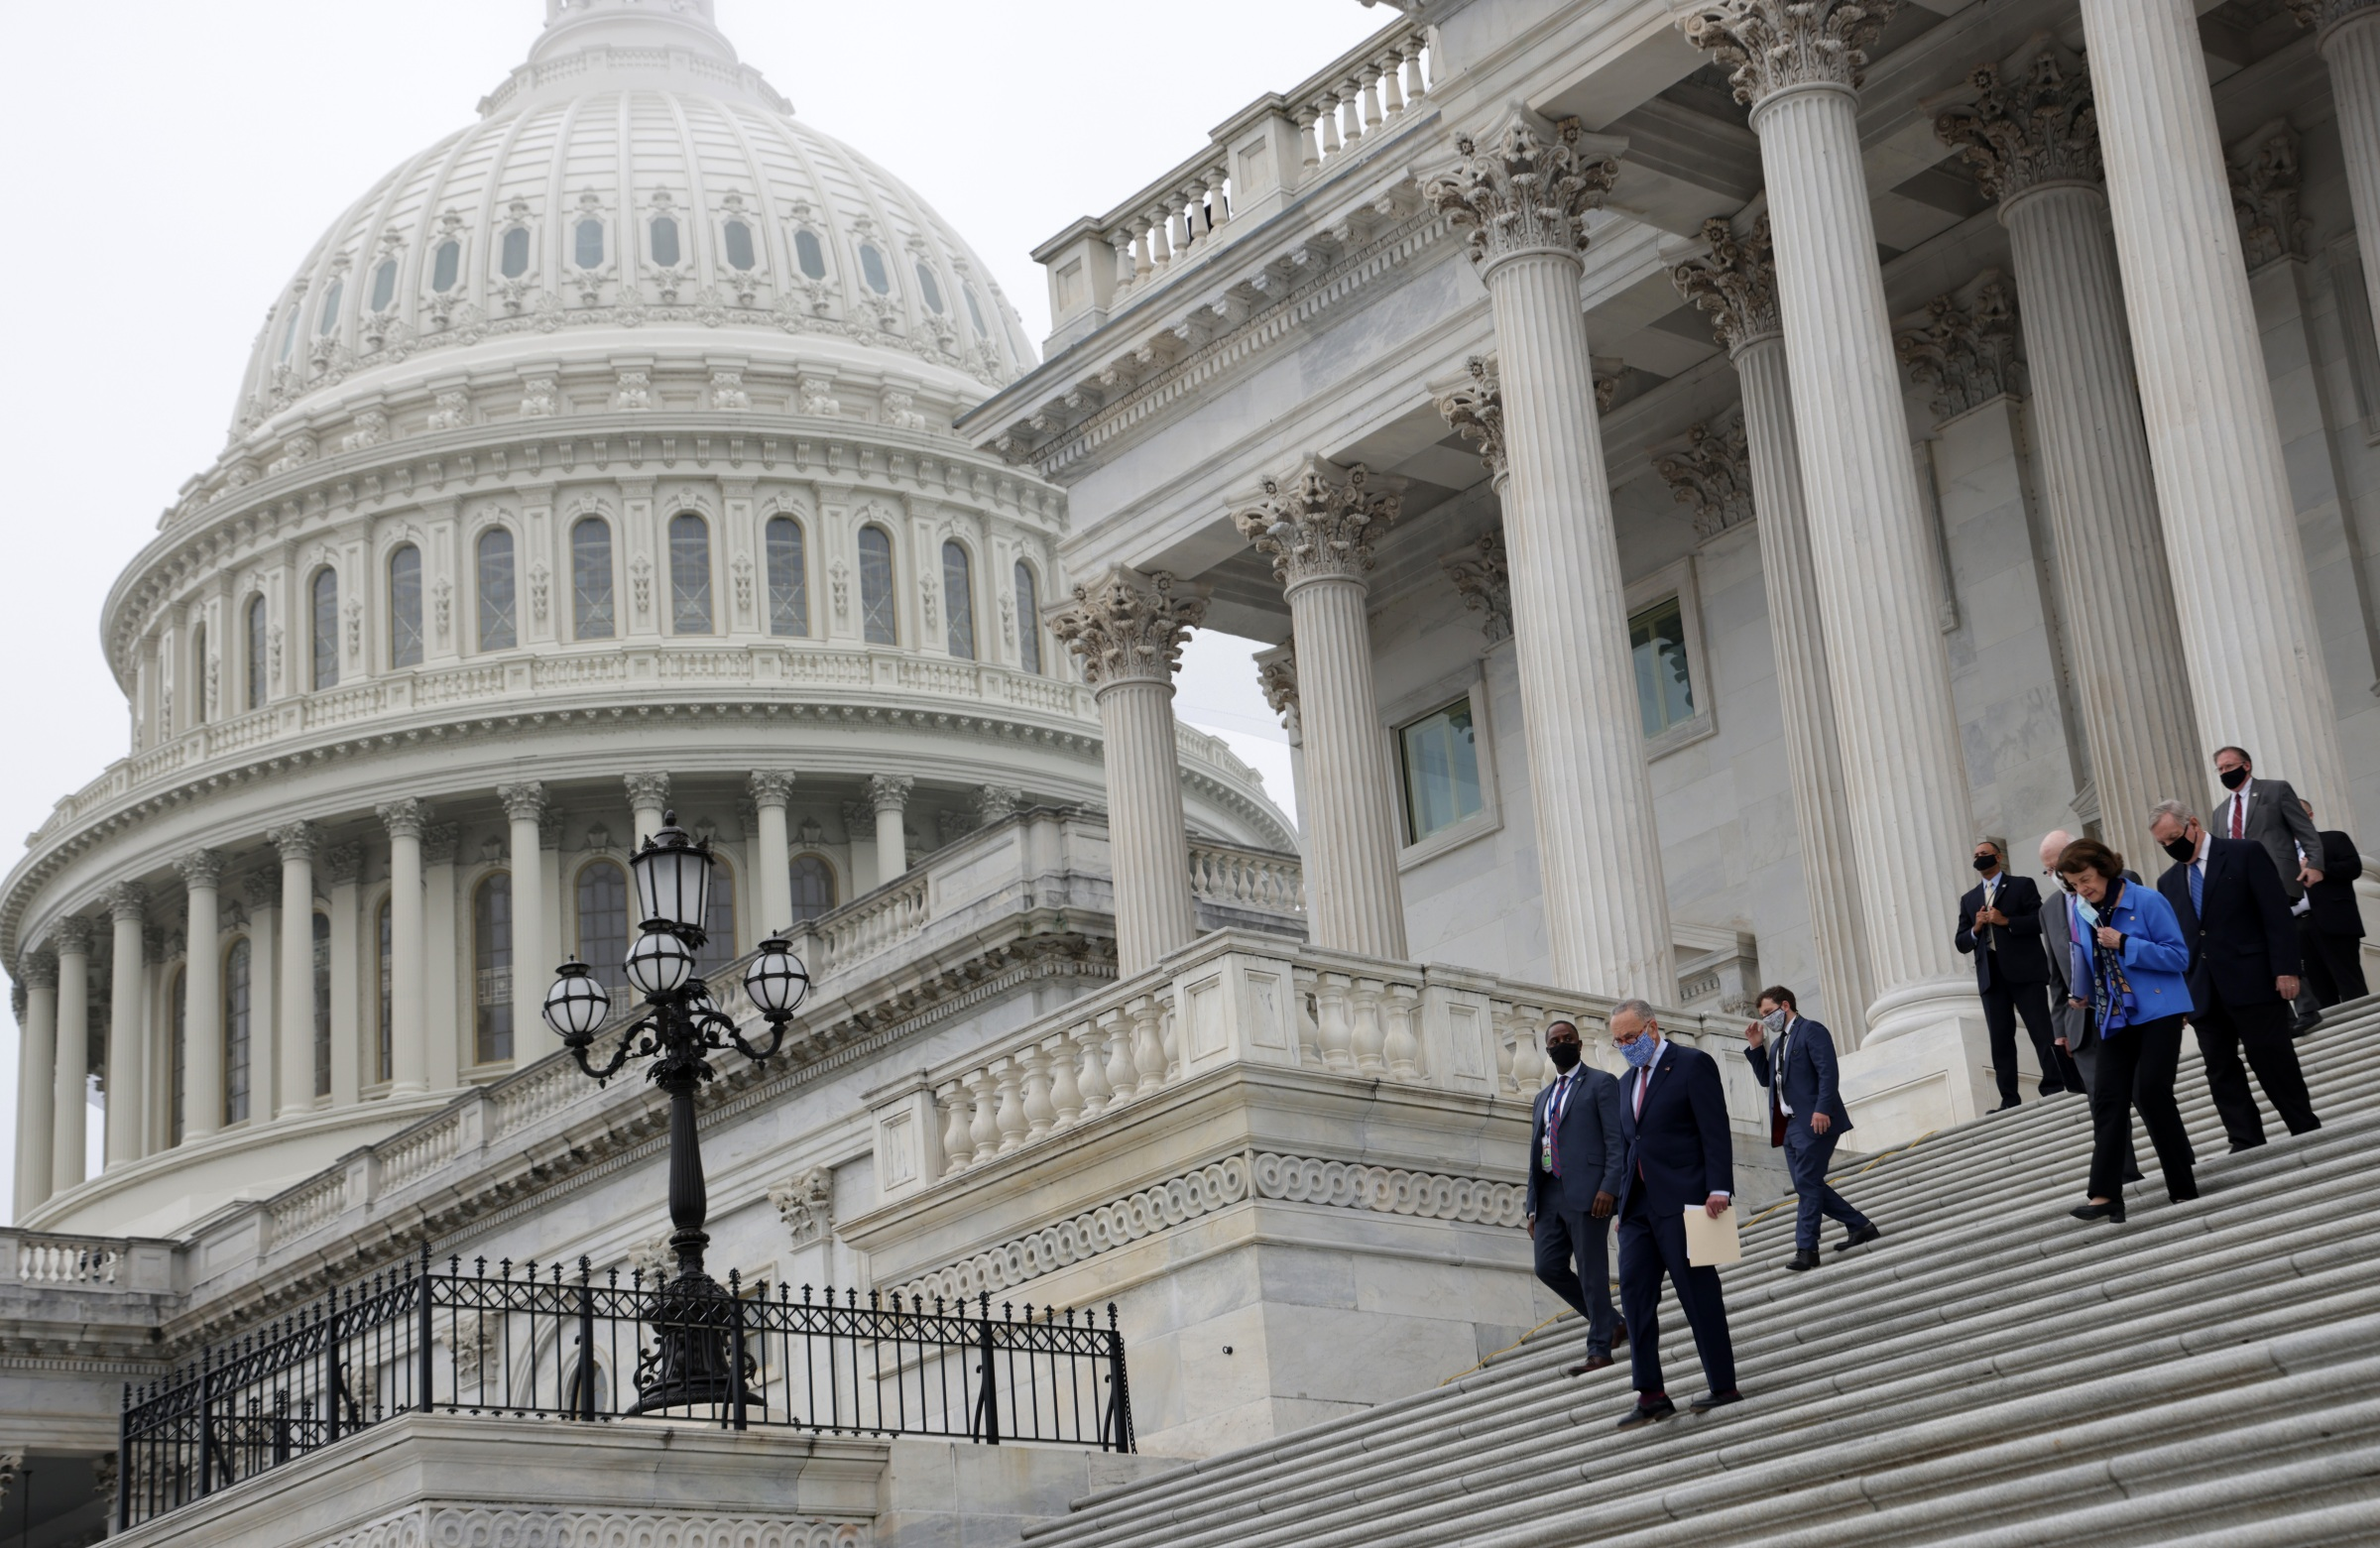 Democratic members of U.S. Senate Judiciary Committee, led by Senate Minority Leader Sen. Chuck Schumer (D-NY), walk down the east front steps of the U.S. Capitol for a news conference after a boycott of the Senate Judiciary Committee hearing on the nomination of Judge Amy Coney Barrett to the U.S. Supreme Court on October 22, 2020 in Washington, DC.